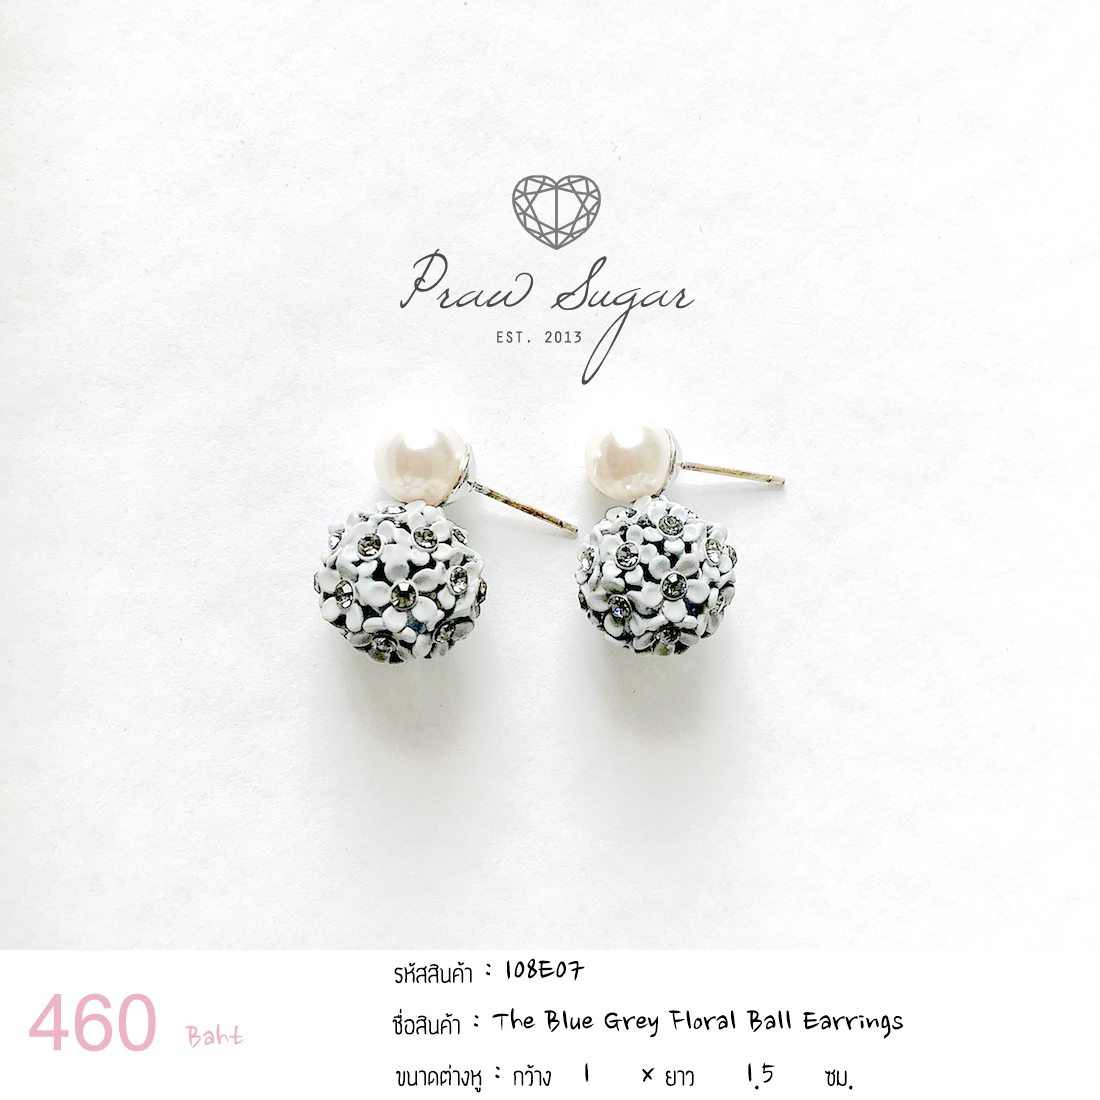 The Blue Grey Floral Ball Earrings